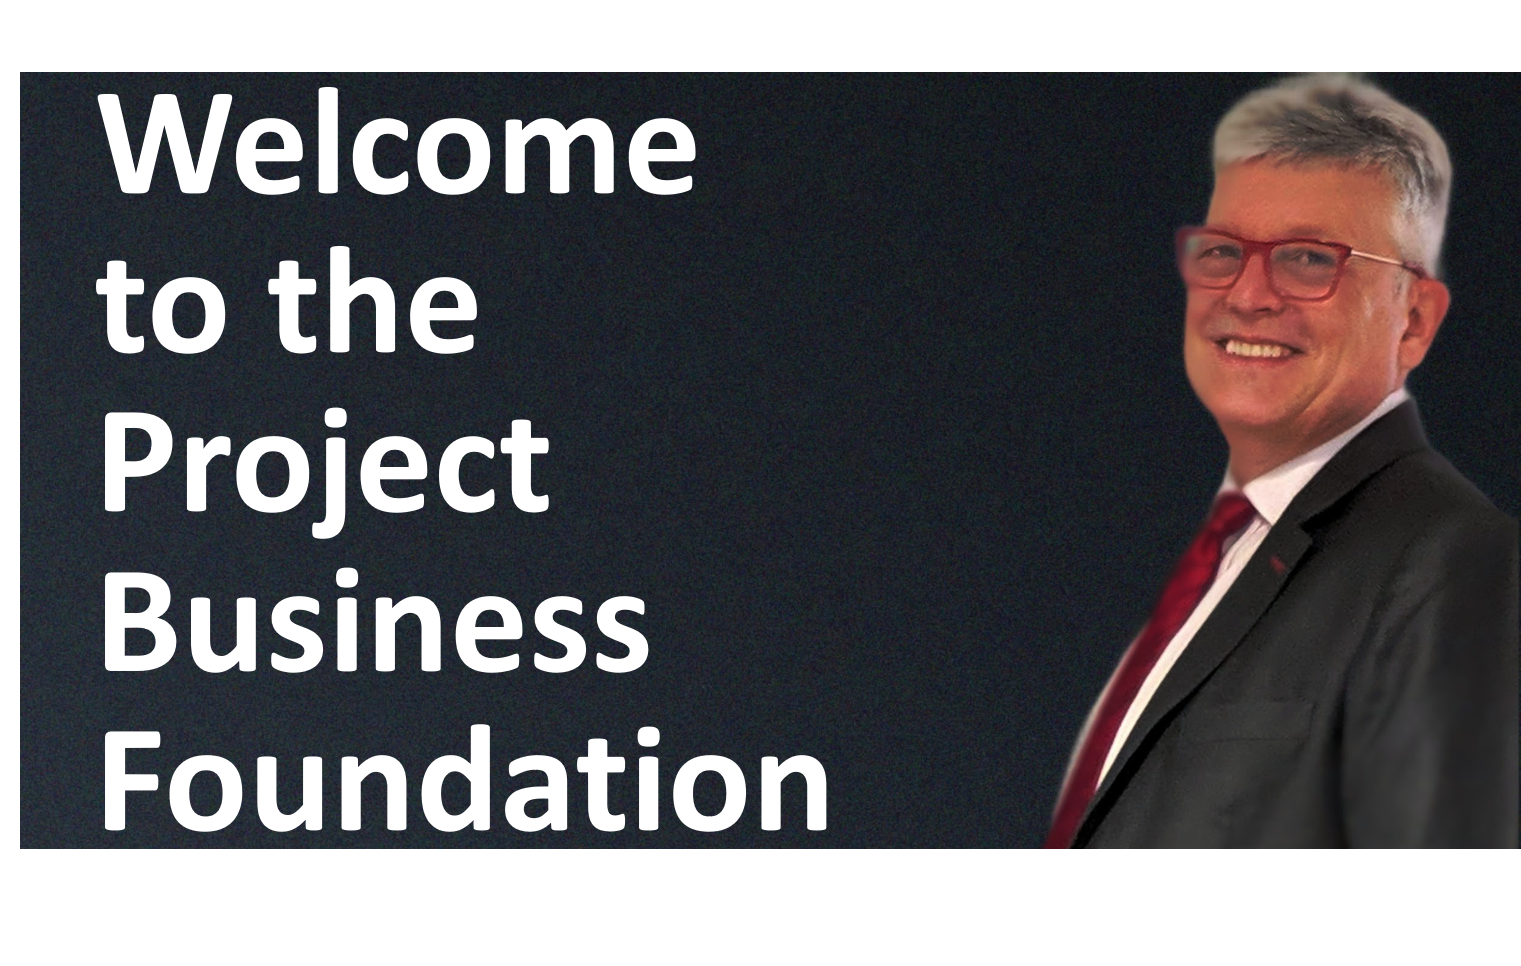 Welcome to the Project Business Foundation